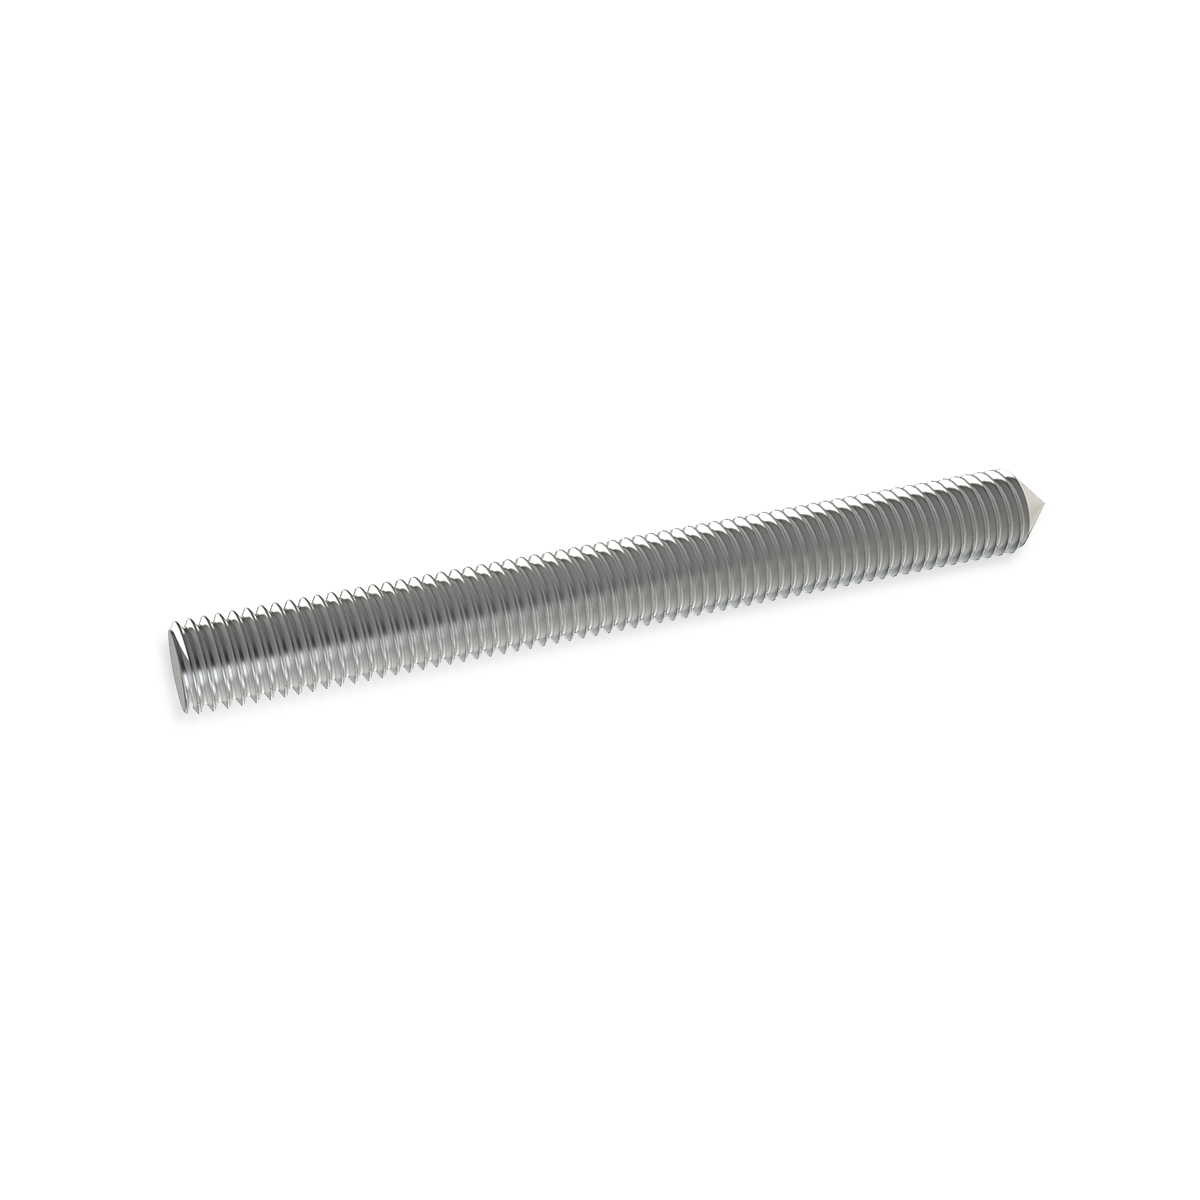 3/16'' Diameter X 4'' Long, Aluminum 10-24 Threaded Stud (1 End Flat - 1 End Conical)